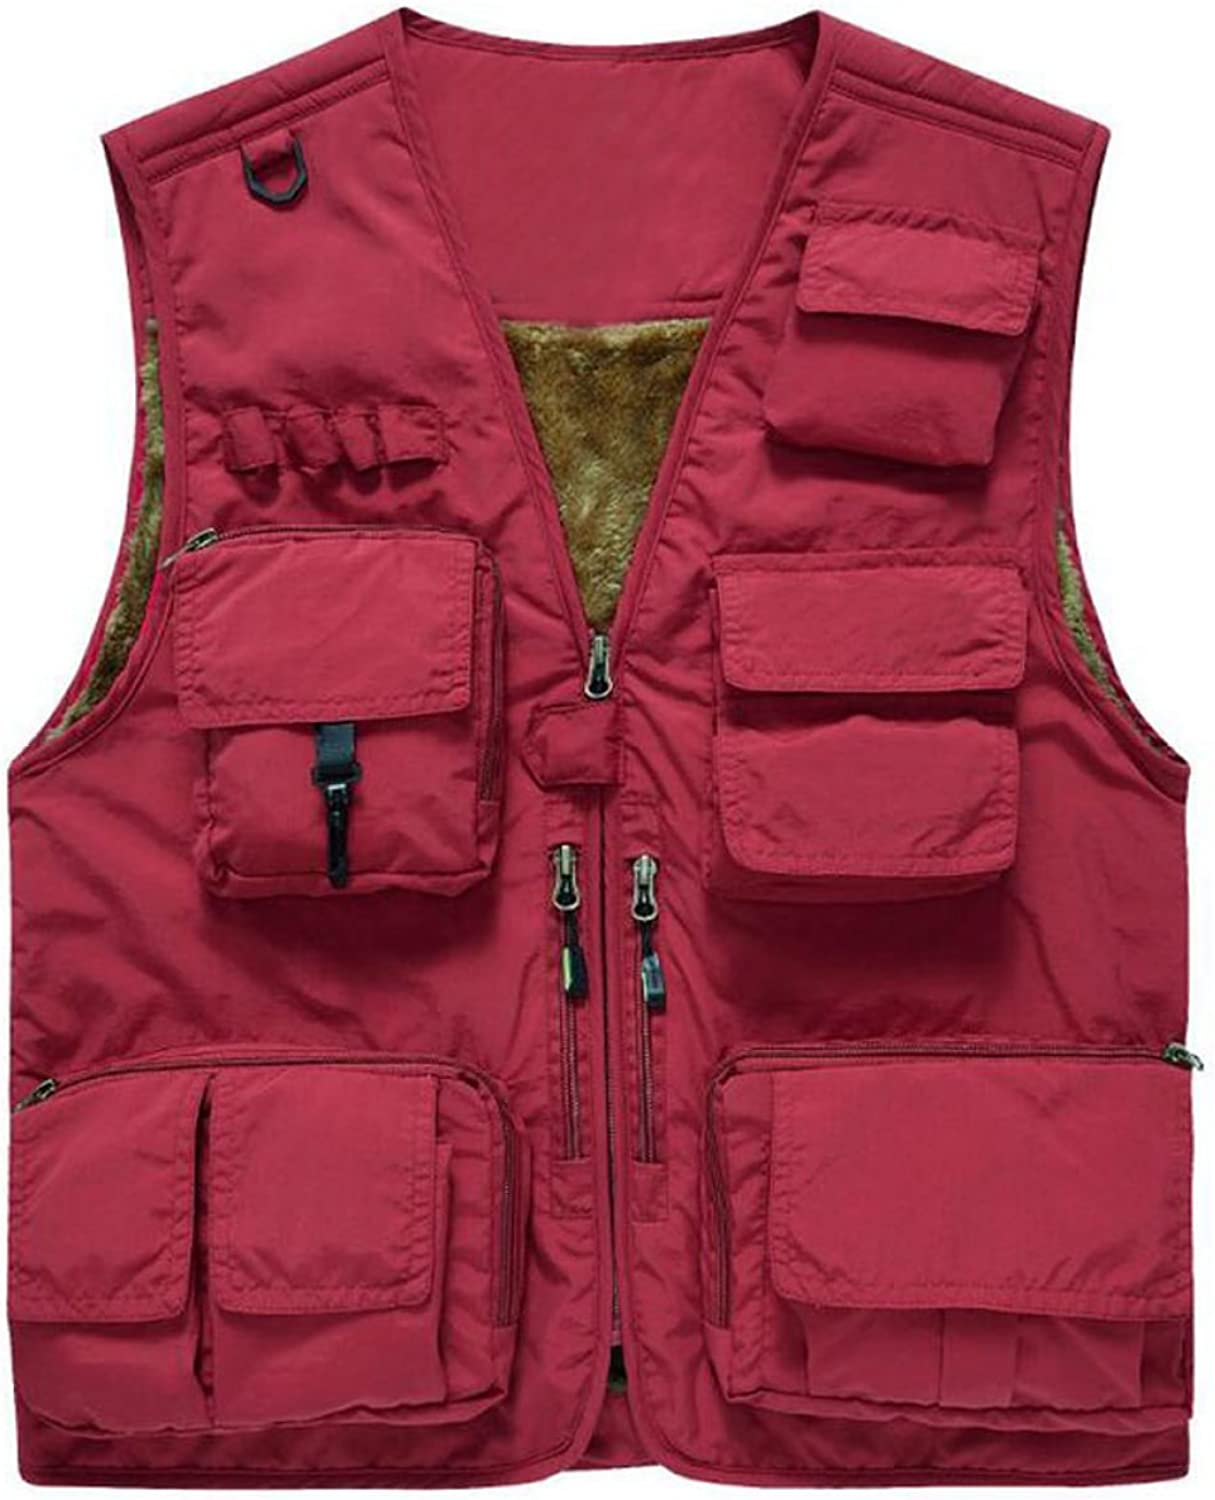 Man Outdoor Waterproof Tactic MultiPocket Vest Jacket,RedXXXXL